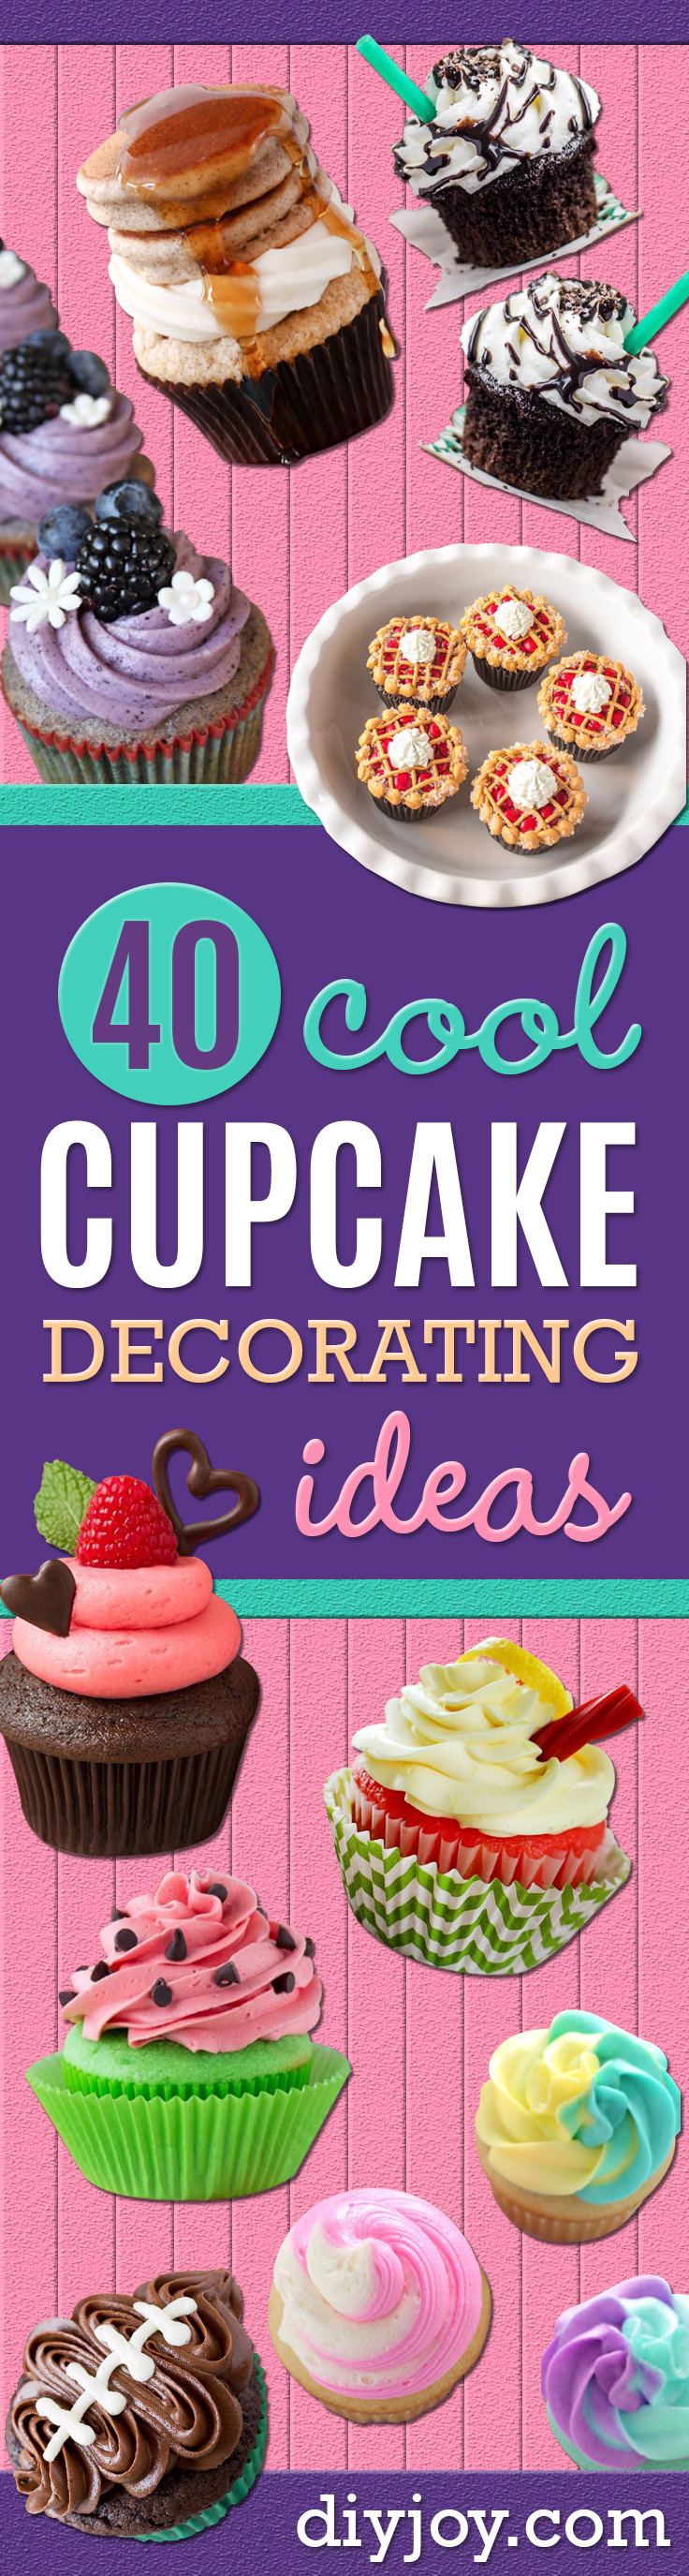 40 Cool Cupcake Decorating Ideas Cool Cupcake Decorating Ideas   Easy Ways To Decorate Cute  Adorable  Cupcakes   Quick Recipes